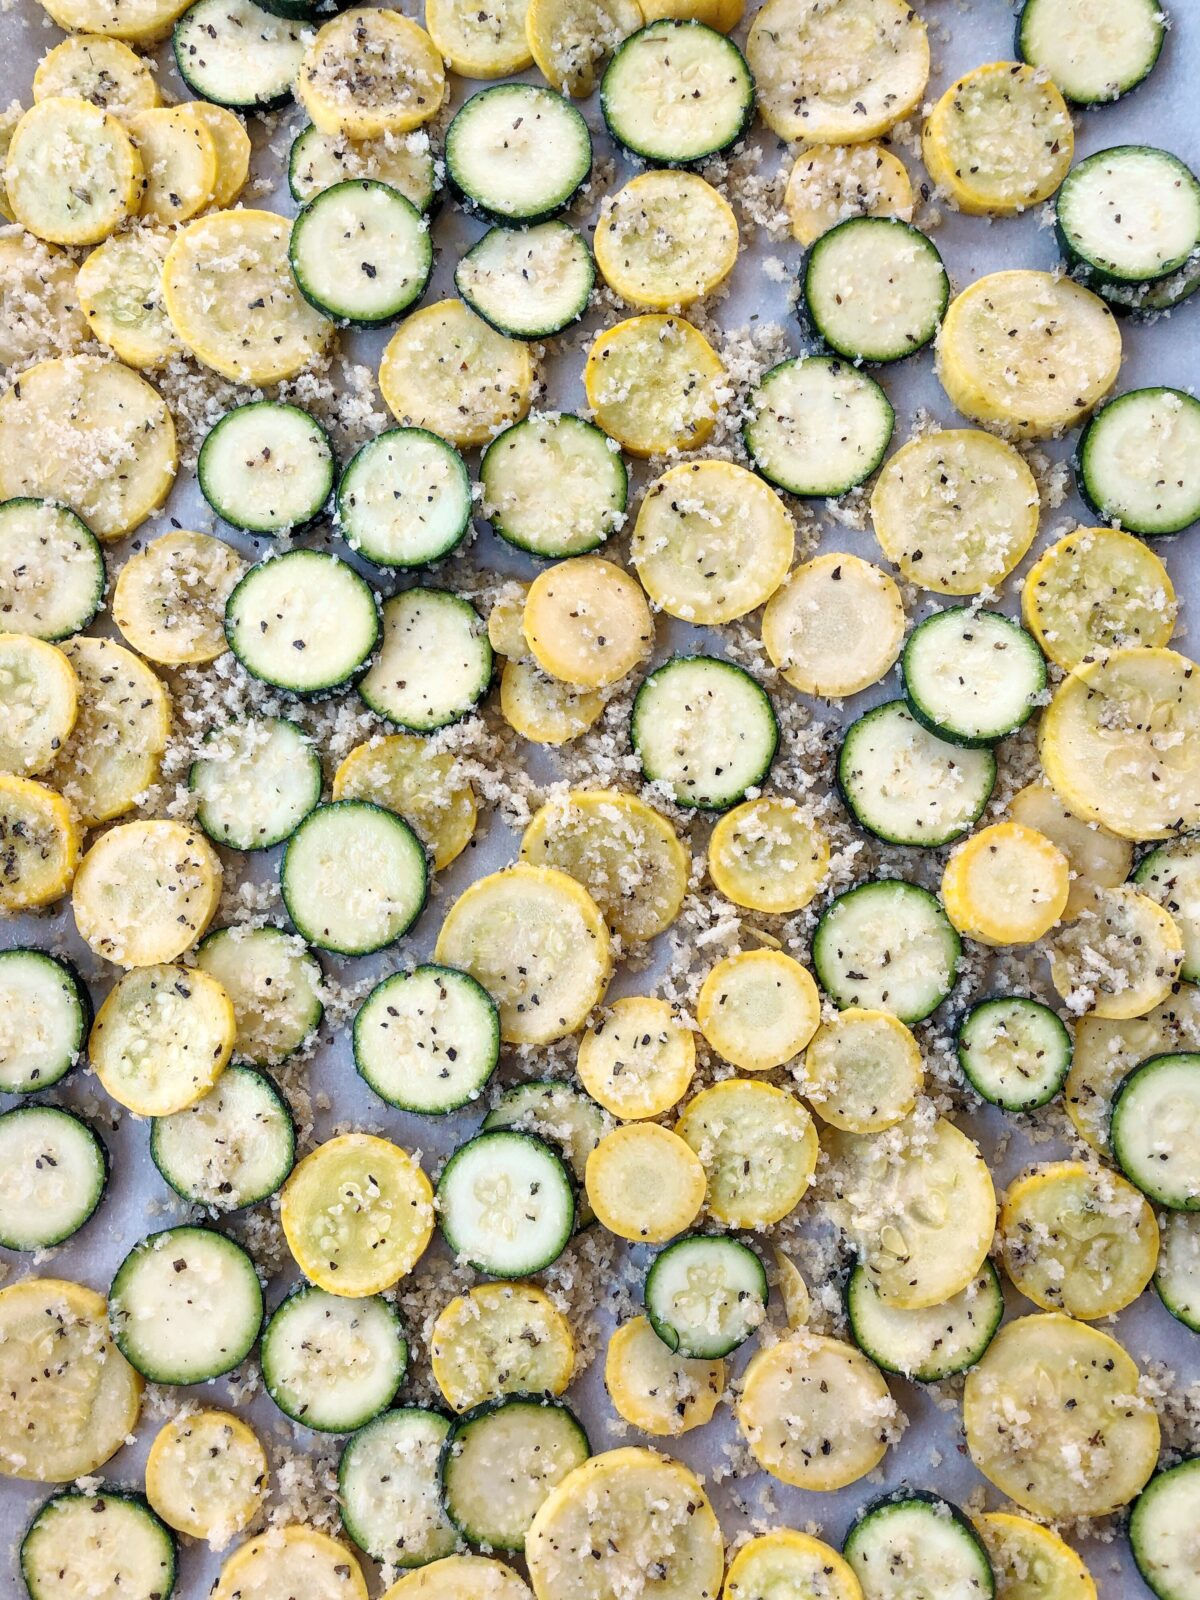 Crispy Baked Zucchini and Squash make a great summer snack or side dish! Combine veggies with Panko, olive oil, salt and pepper, then roast for 30 minutes